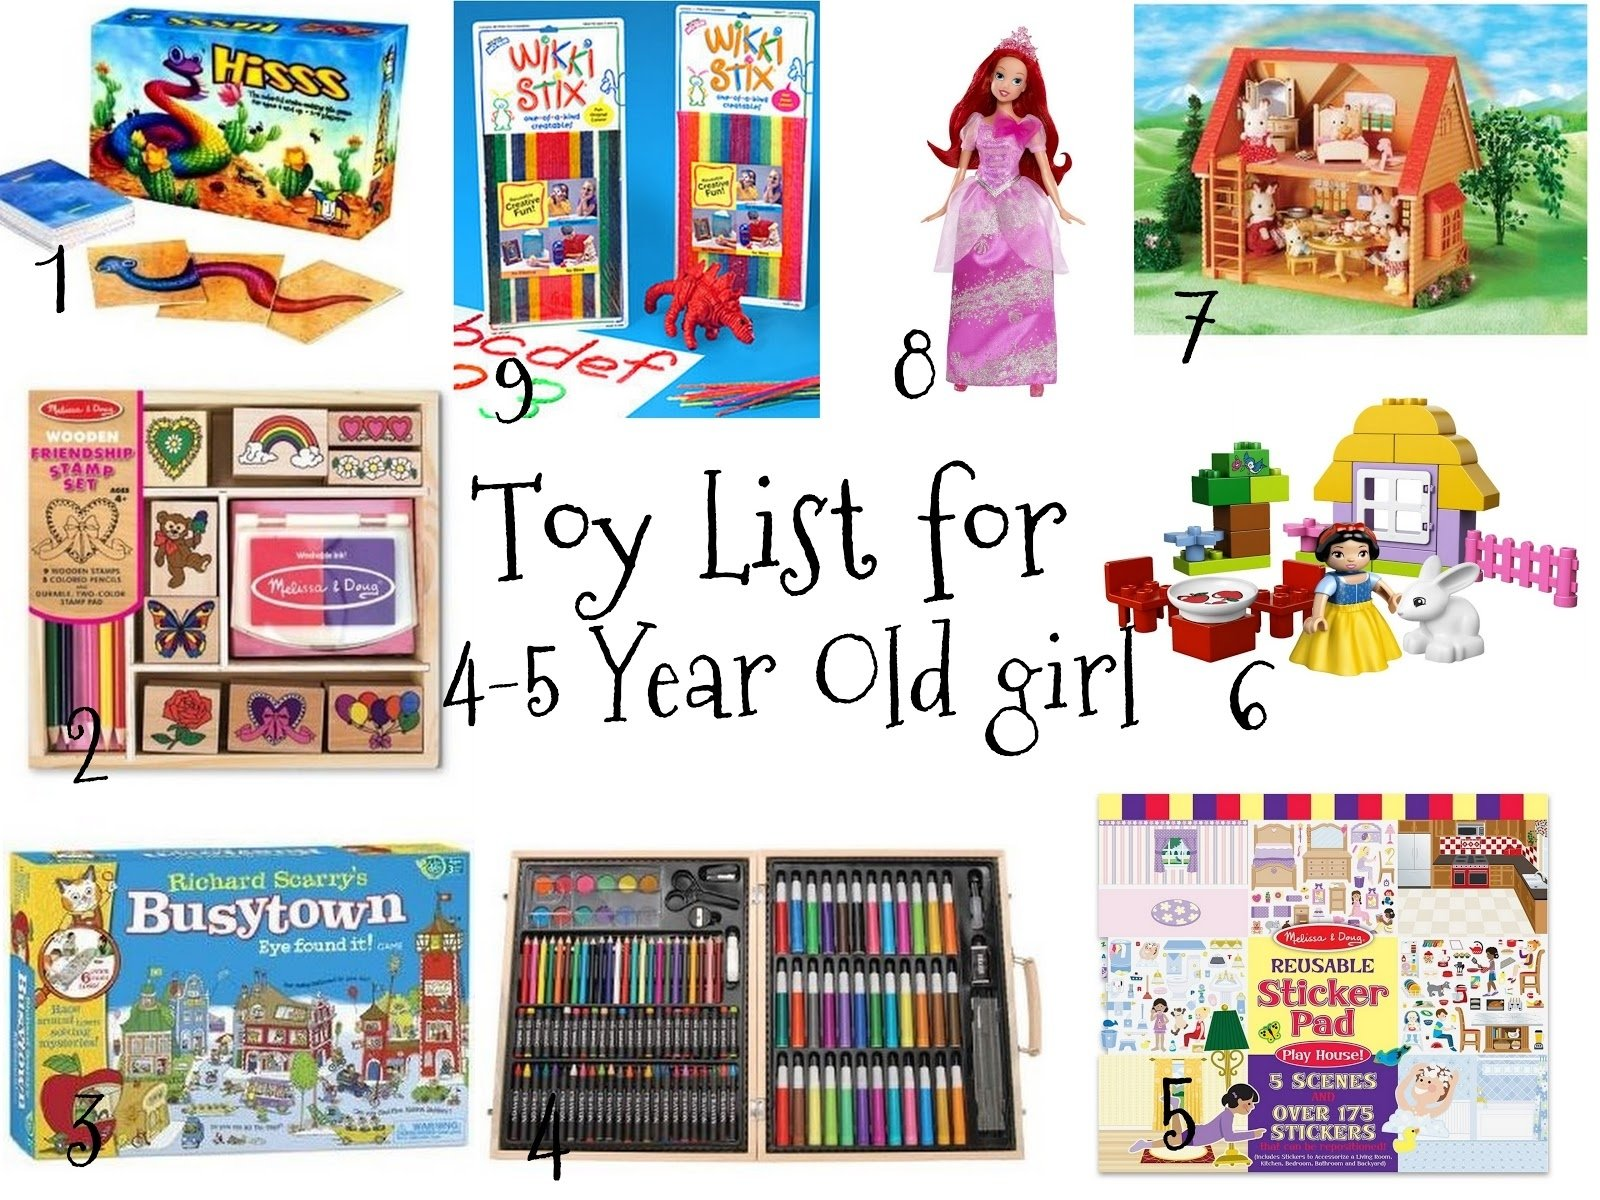 10 best christmas gifts for 5 to 7yearold boys and girls page 3 - Best Christmas Gifts For 4 Year Old Boy